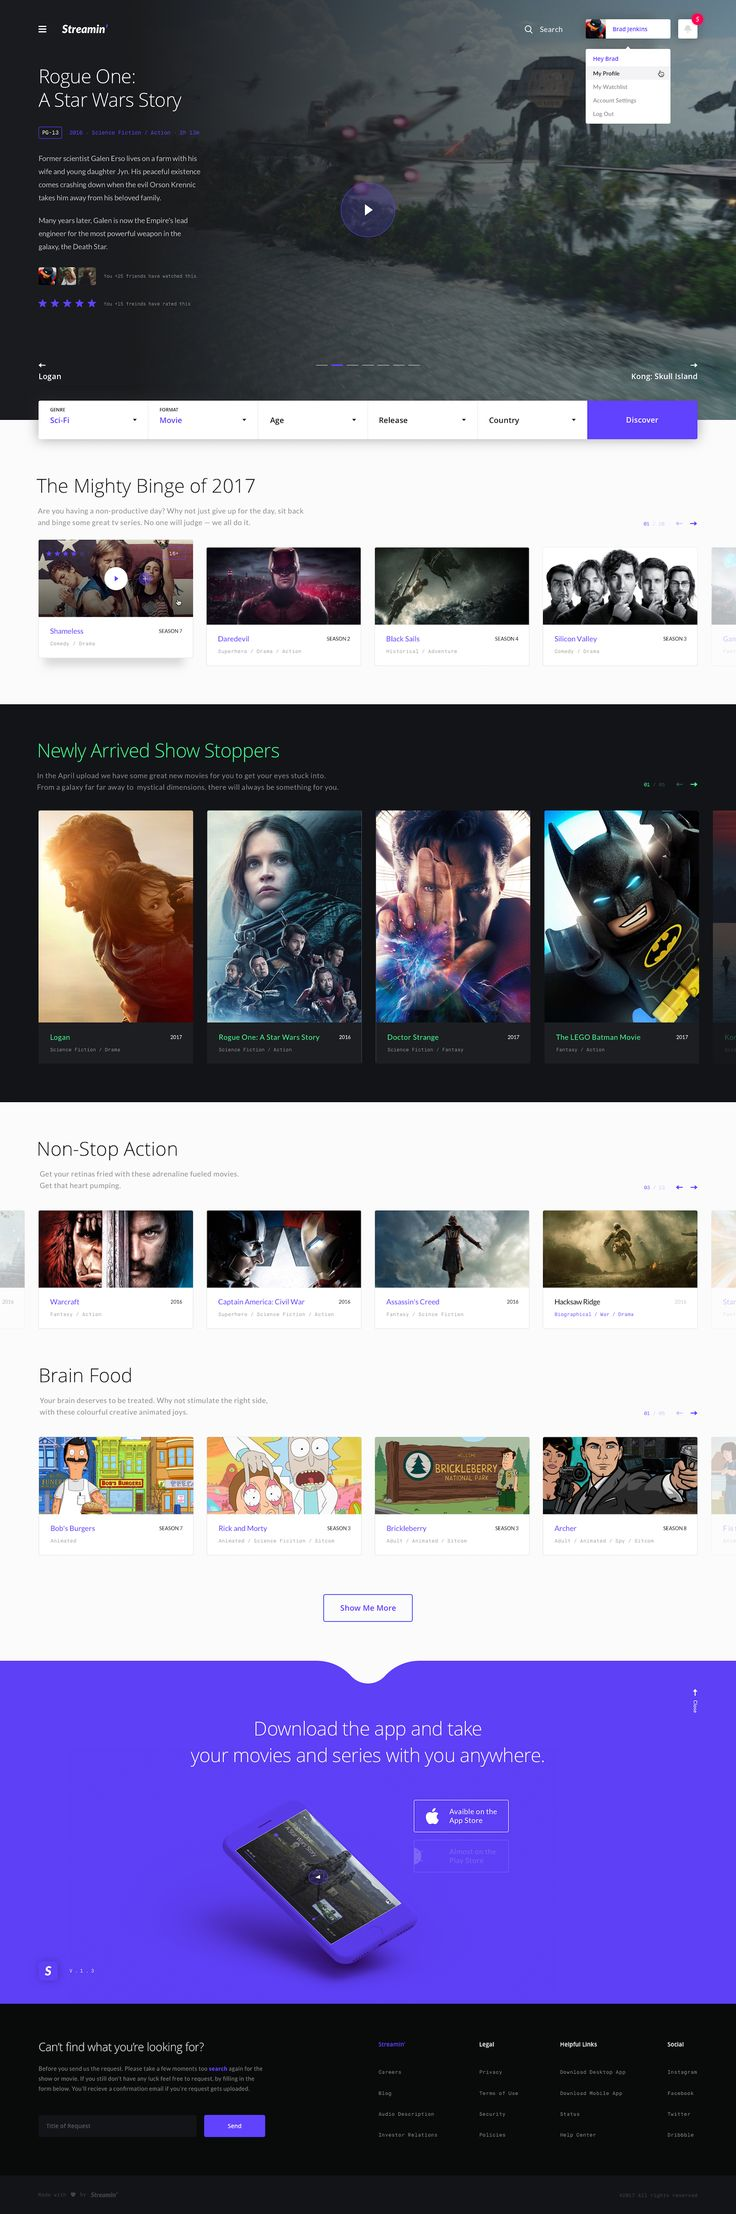 This is a concept design I worked on for a paid for streaming service: Streamin', inspired by Netflix and other legal and not so legal streaming sites. To avoid overwhelming the user with hundreds of content thumbnails, I wanted the layout direction to be more spacious and instead broke it up into clean, organised and packaged sections.